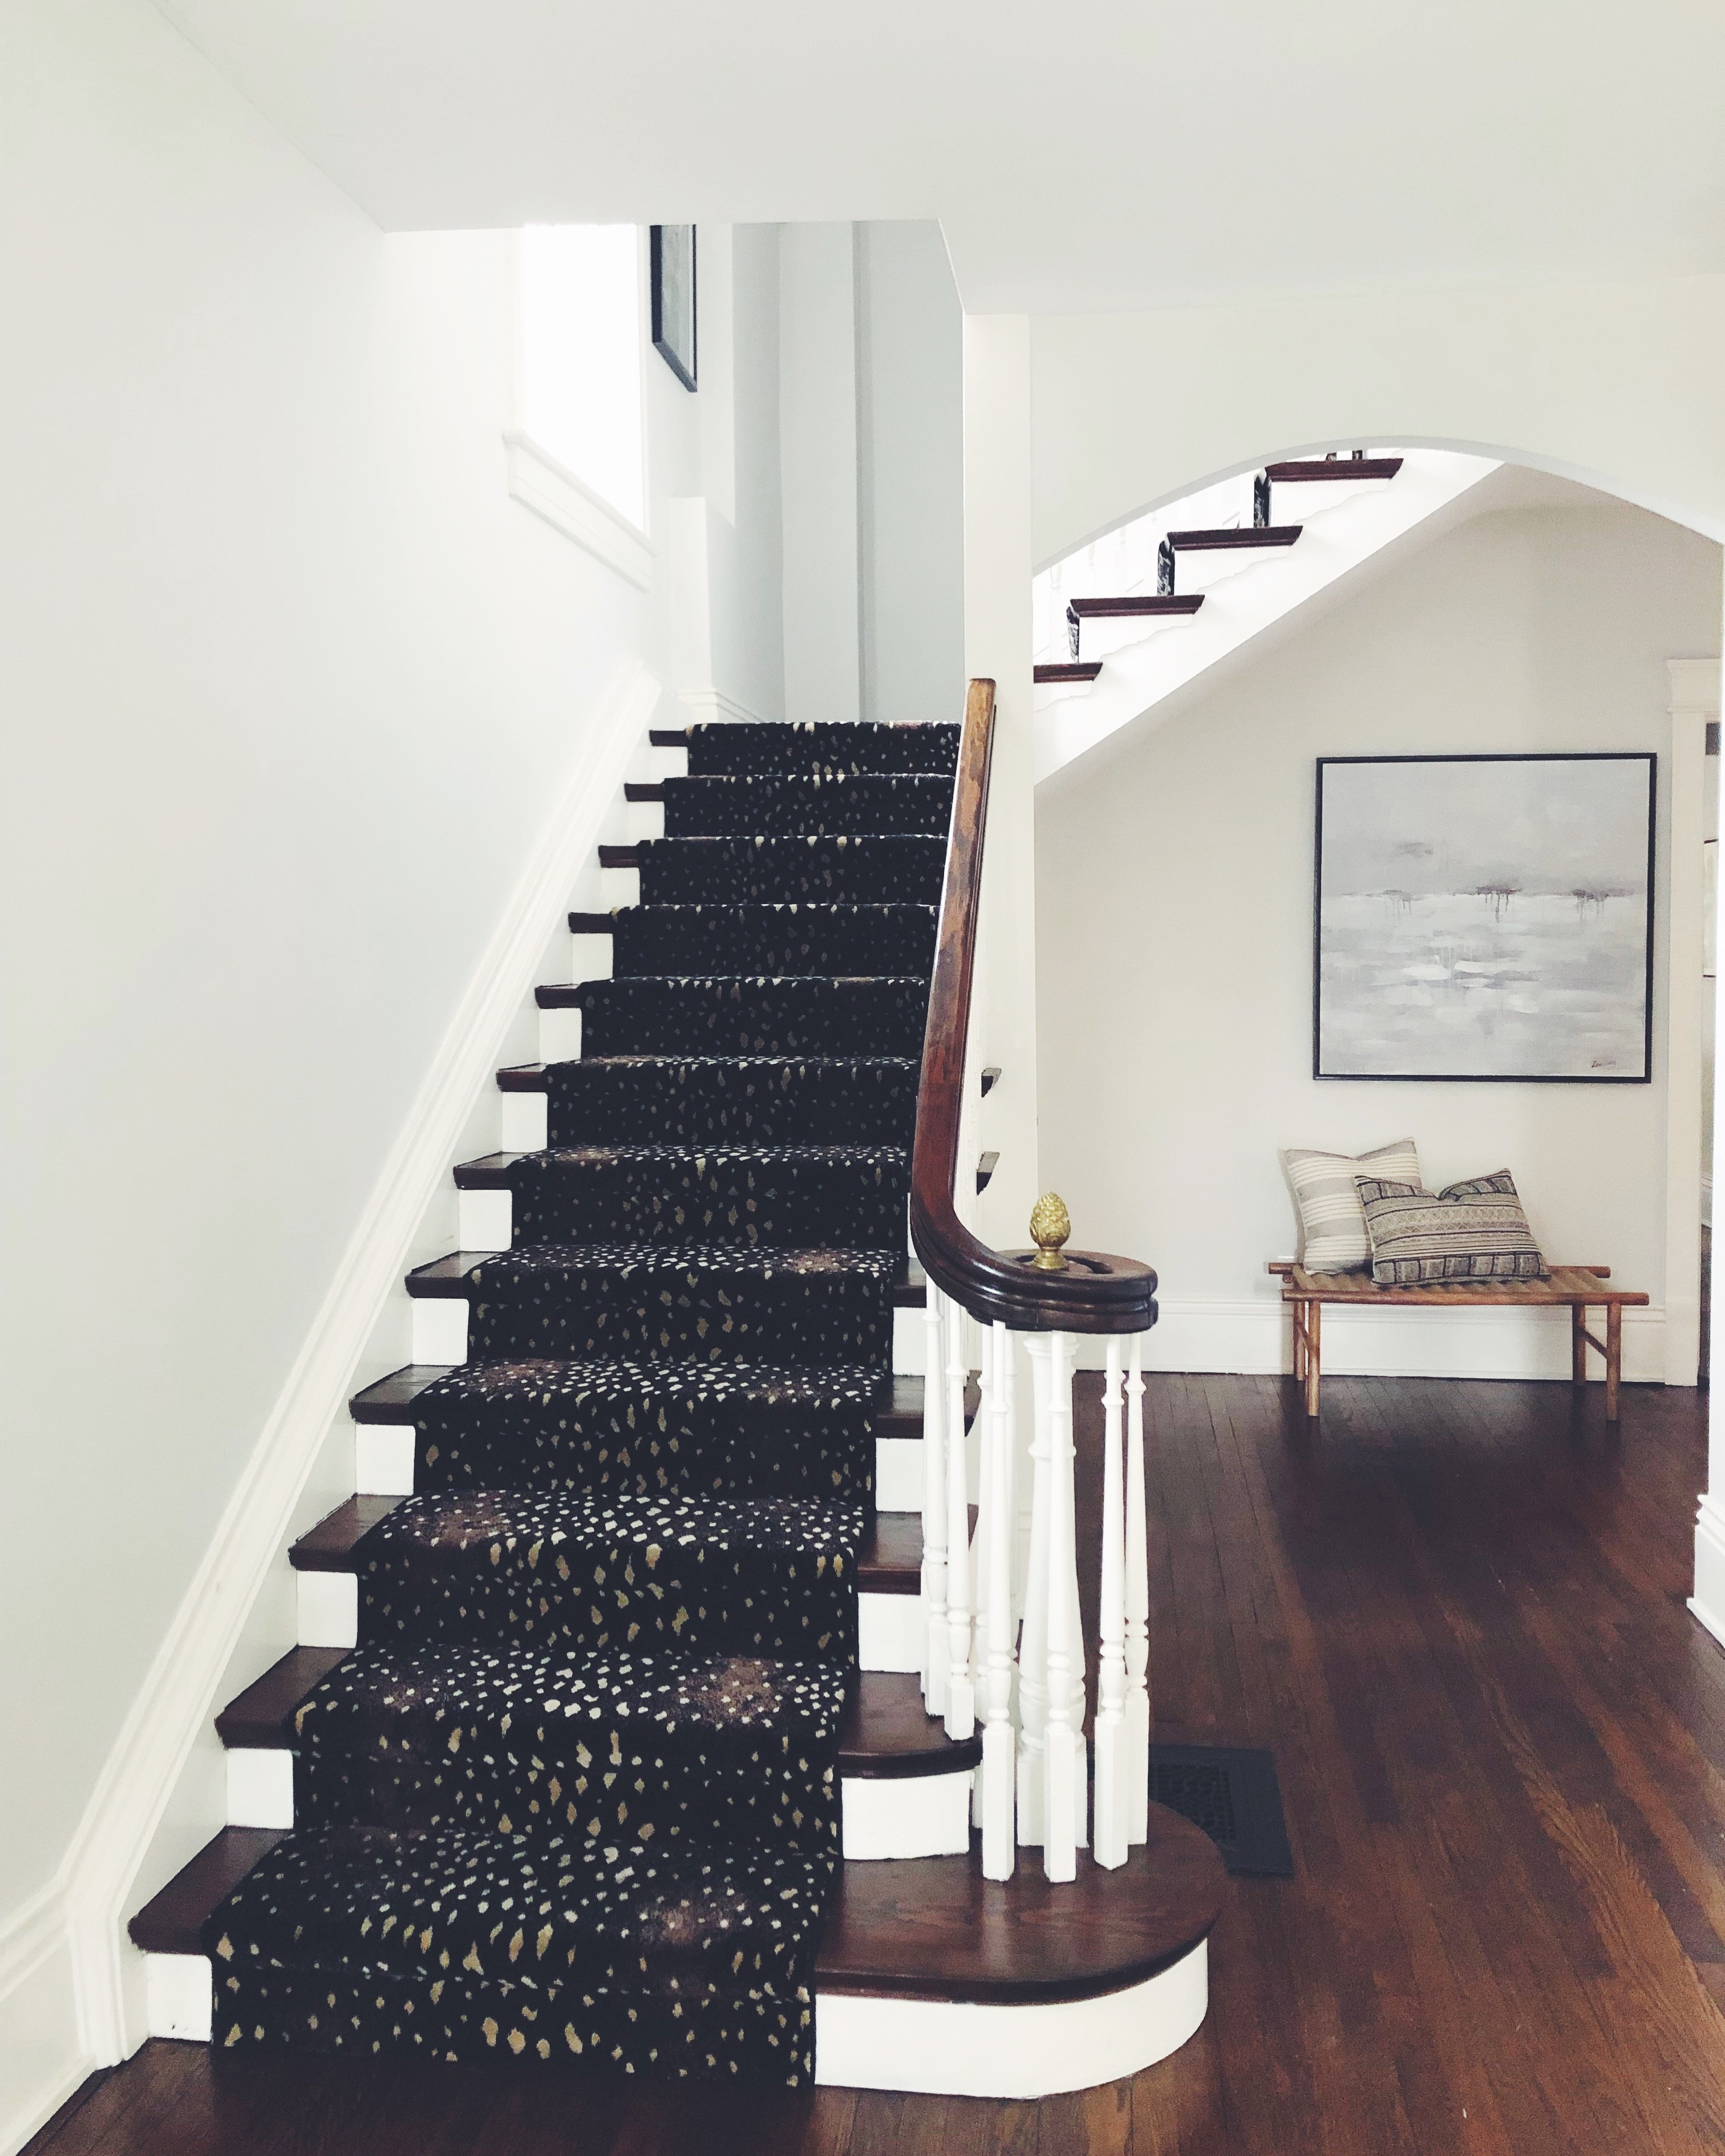 Our Stair Runner All Your Questions Answered Lows To Luxe | Carpet Rugs For Stairs | Navy Blue | Beige | Tartan | Wool | Diamond Pattern